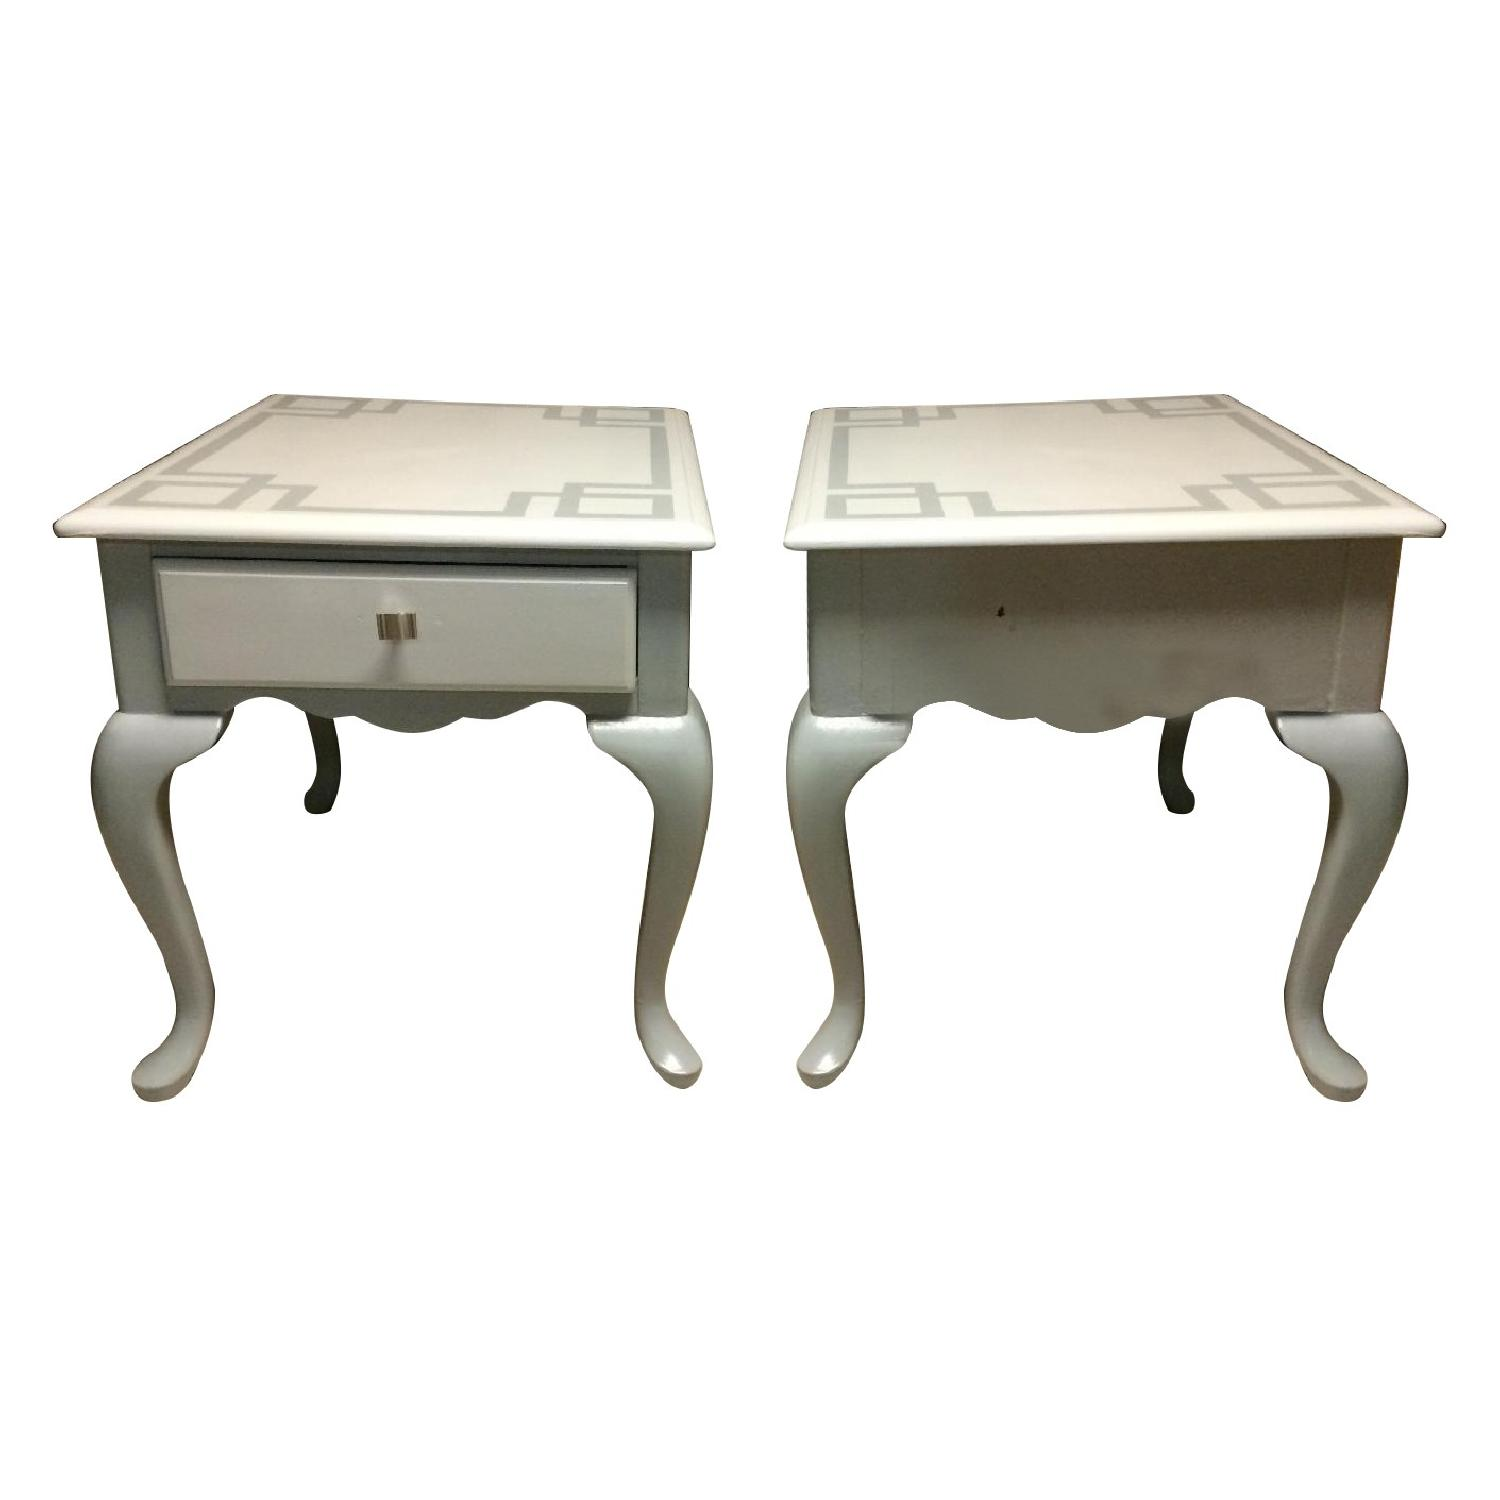 Ethan Allan Queen Anne Styled Side Tables in Gray - Pair - image-0